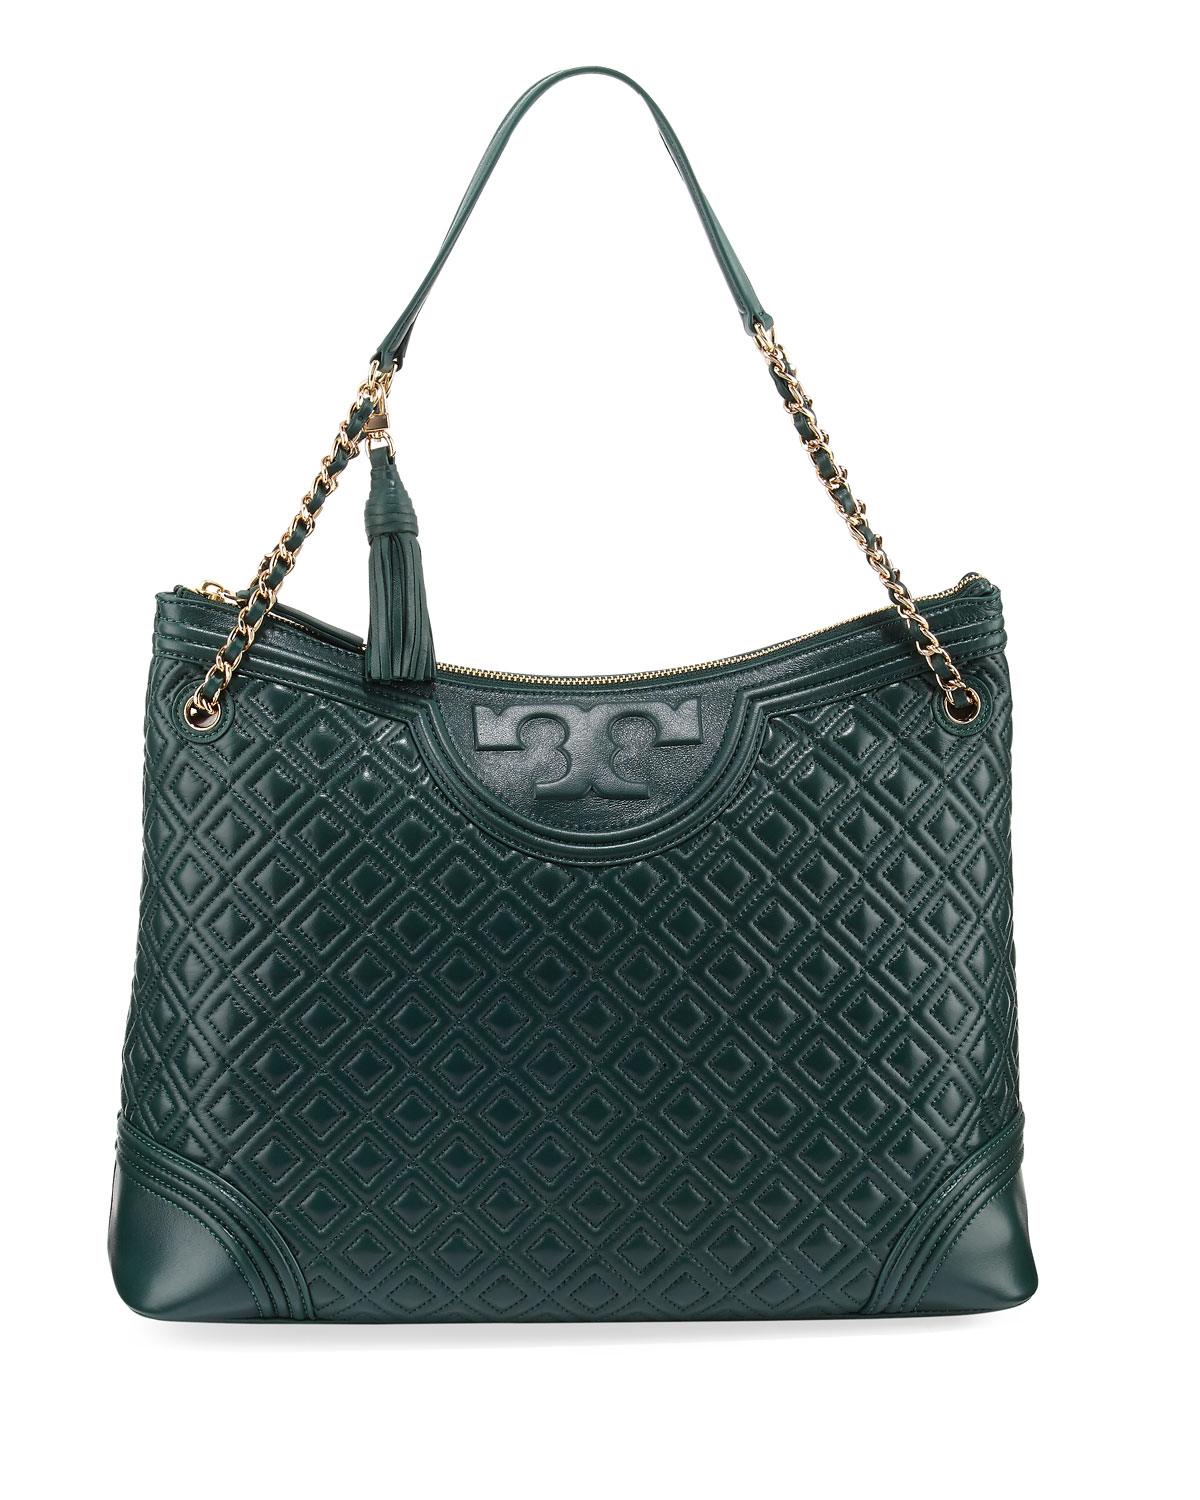 8977c26a4791 Tory Burch Fleming Quilted Leather Tote Bag